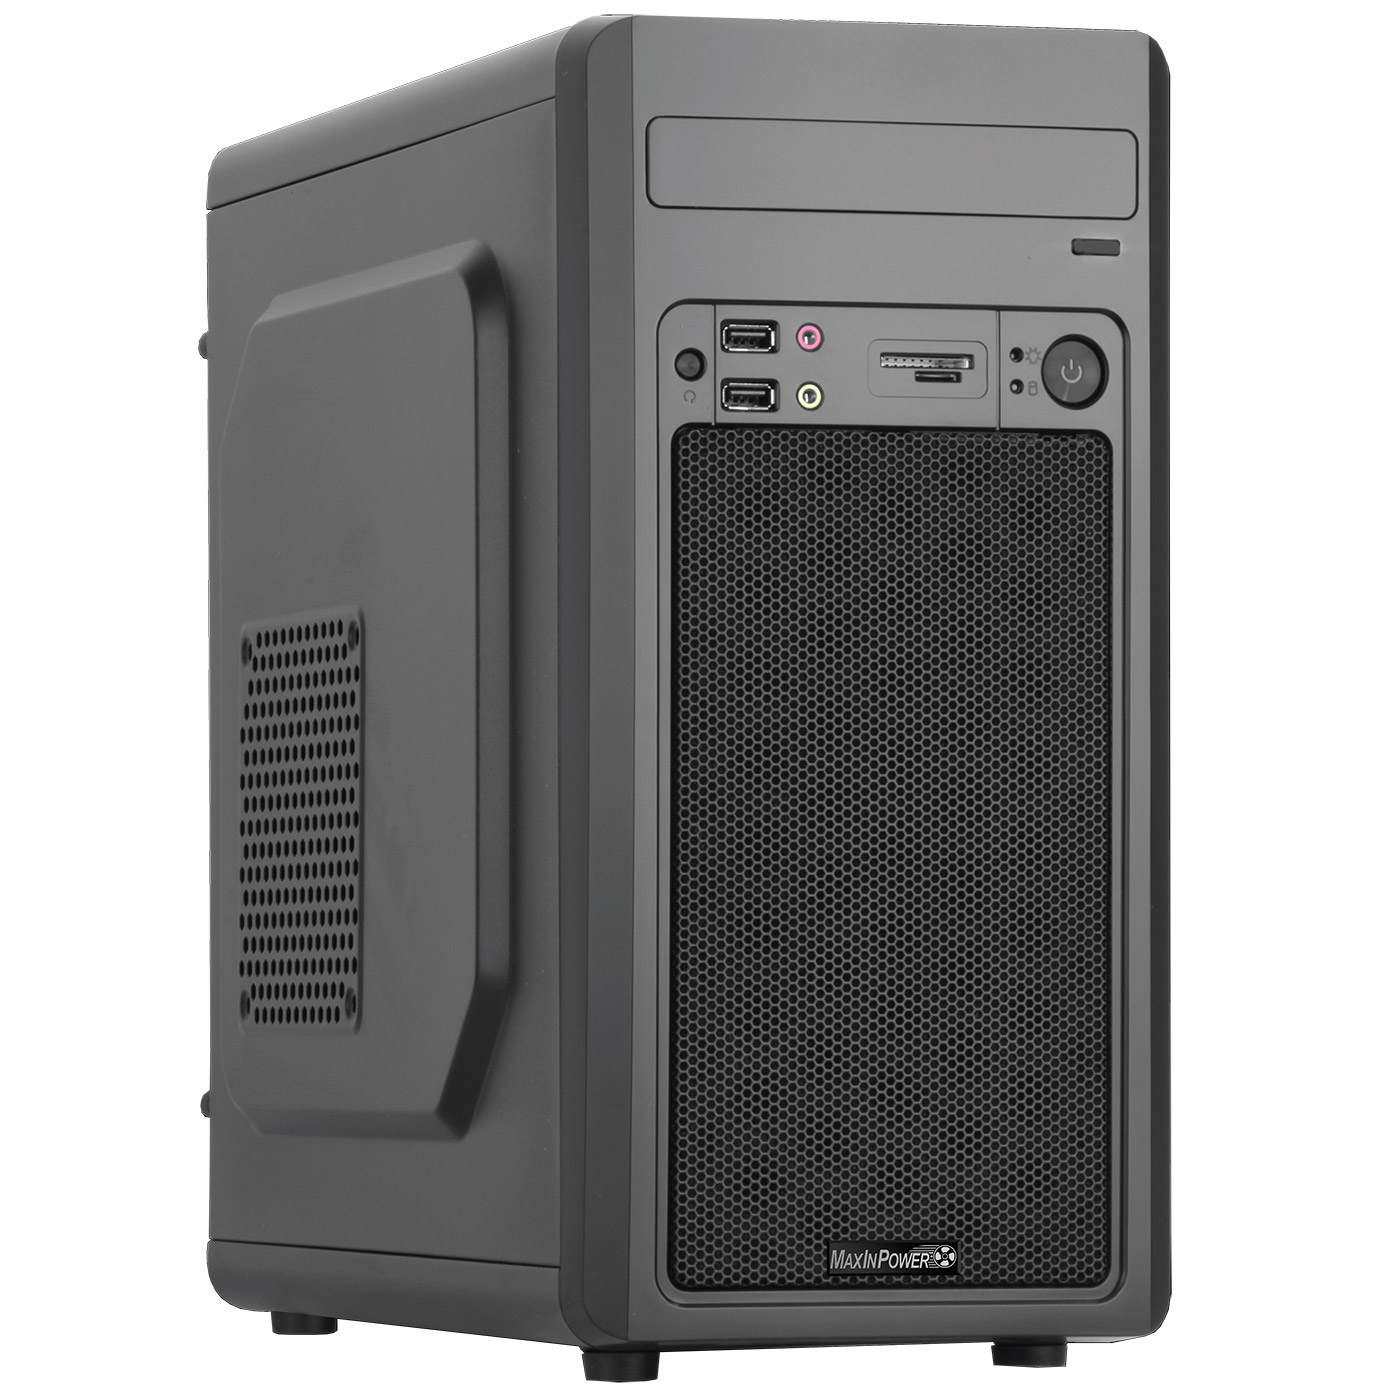 BT MAXinPOWER Micro ATX